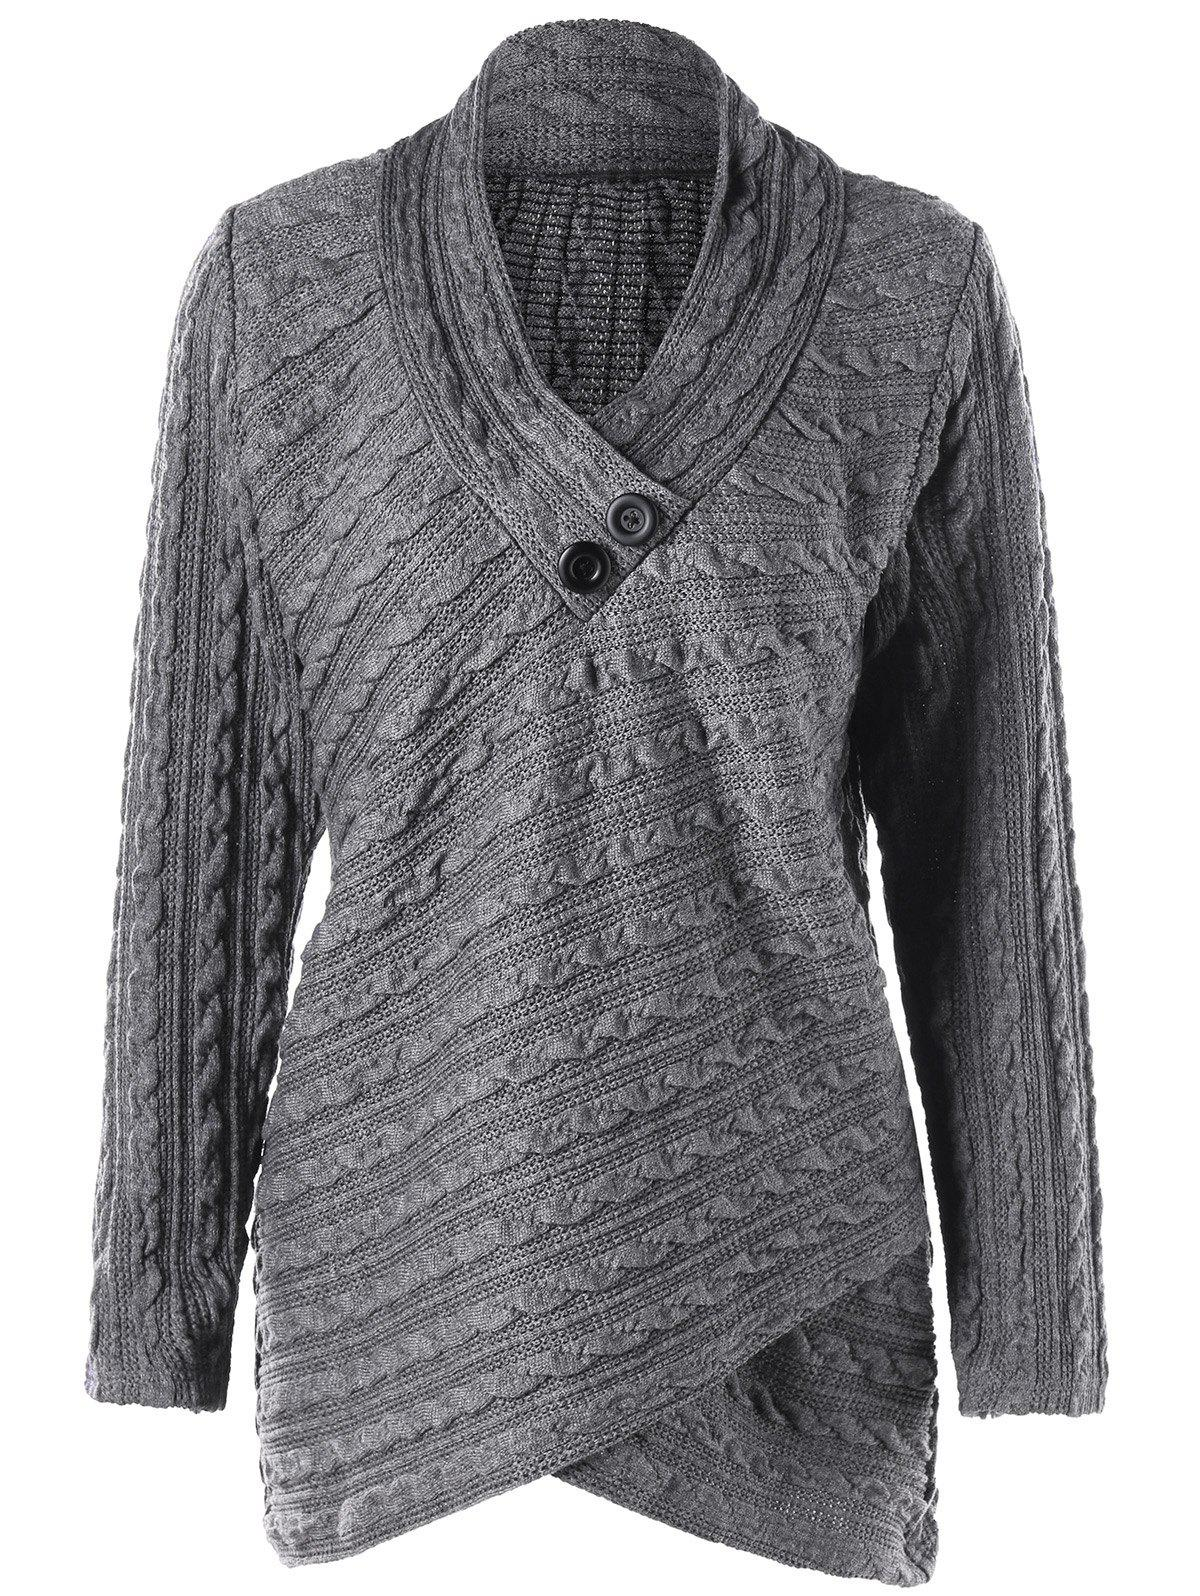 Plus Size Cable Knit Overlap Top - GRAY 2XL